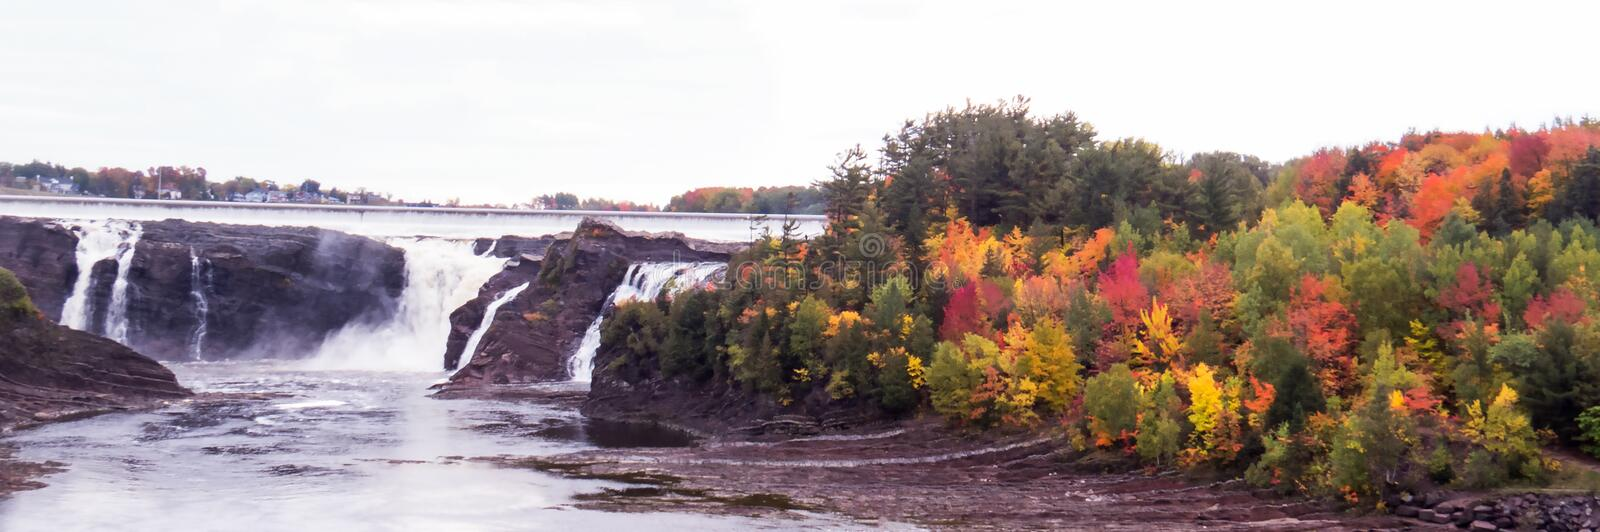 Panoramic: Waterfalls with a lot of distant colorful trees stock images